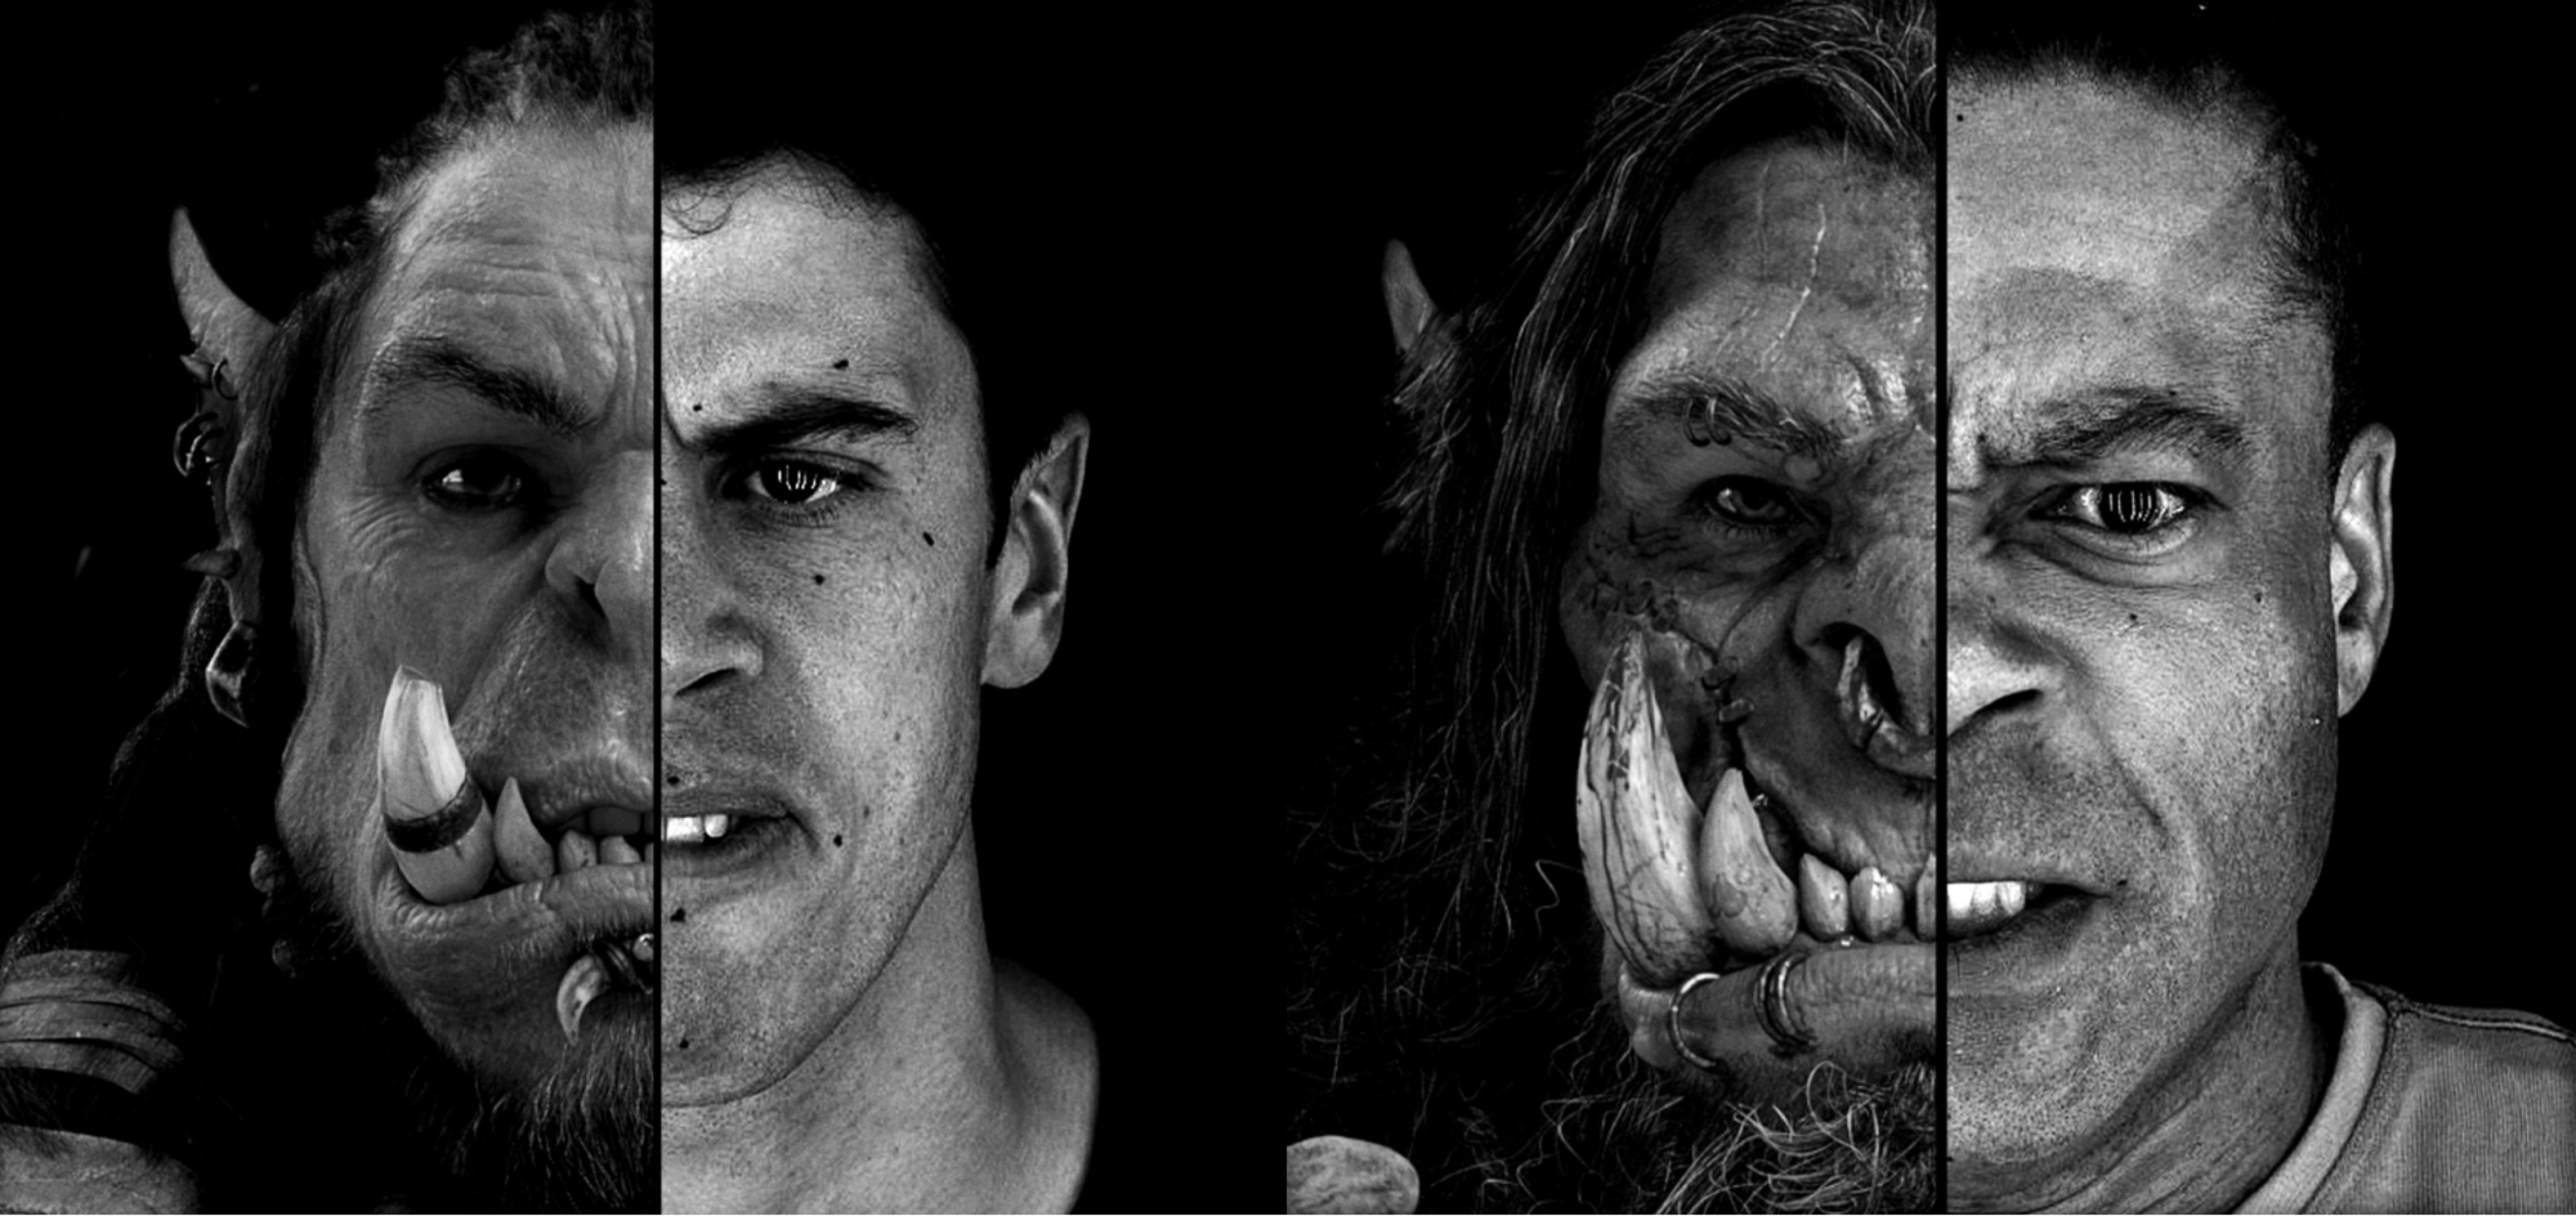 Why The Warcraft Facial Capture Is Considered Groundbreaking